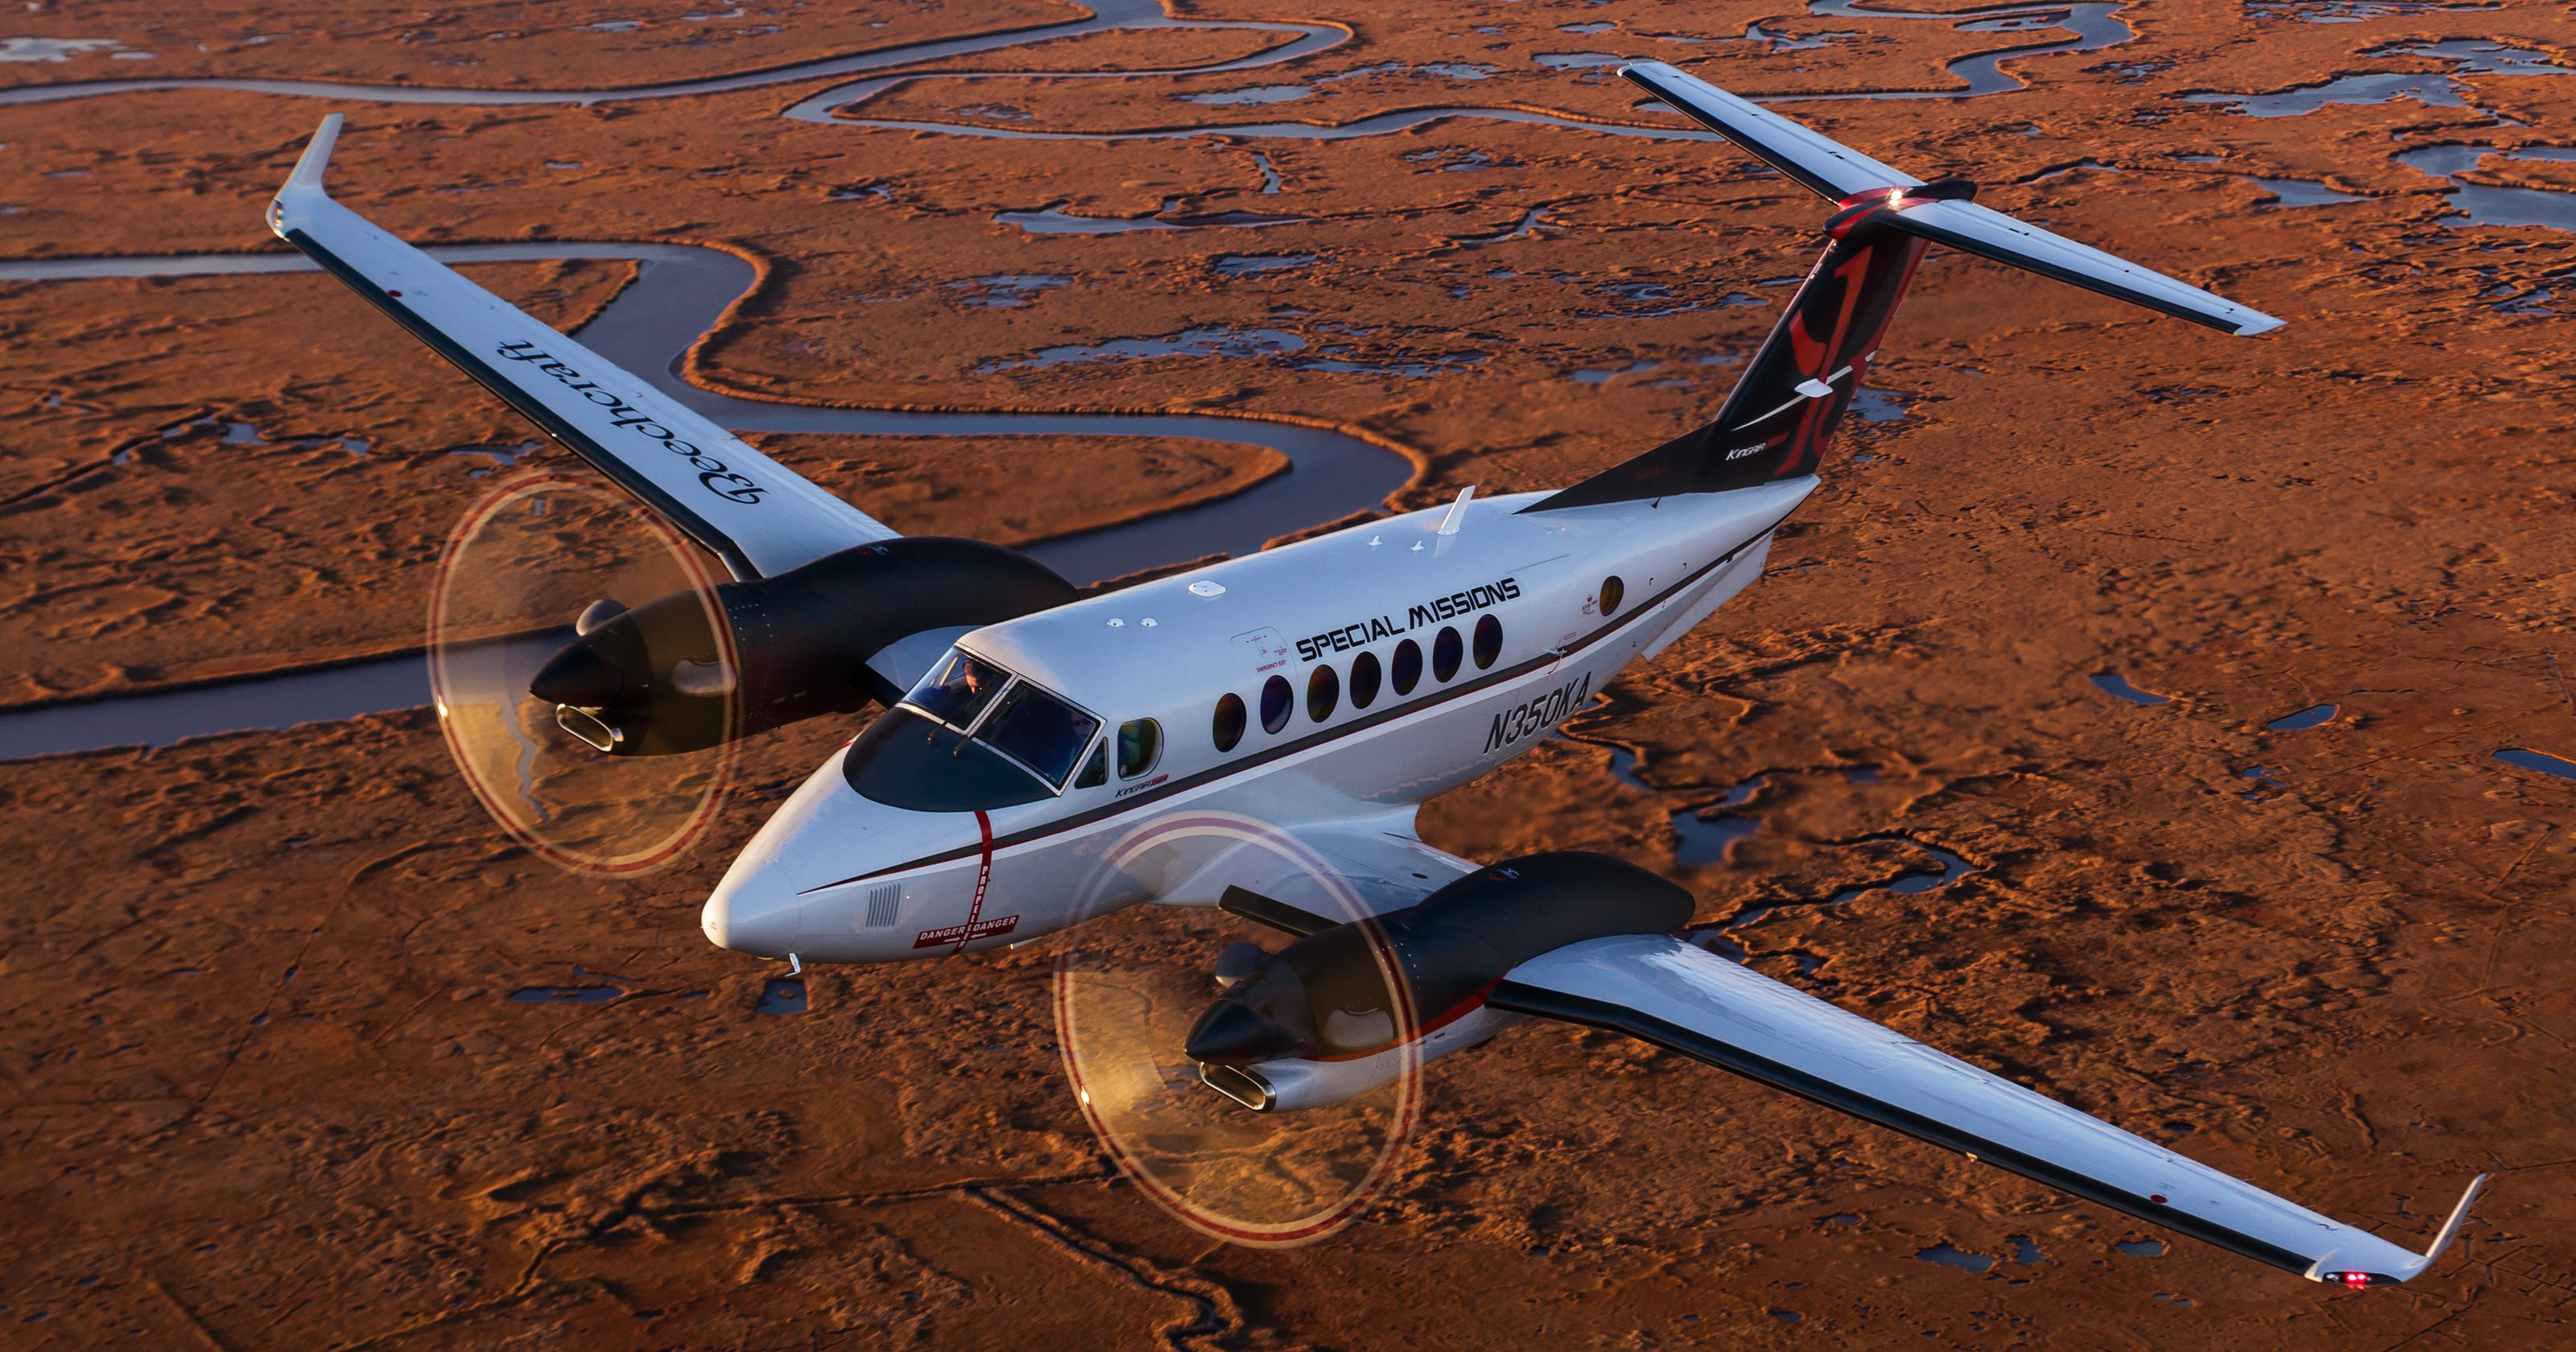 635802605773881408 DFN AUSA King Air Djibouti: Army Spy Plane Deploys To The US Africa Command area of operations